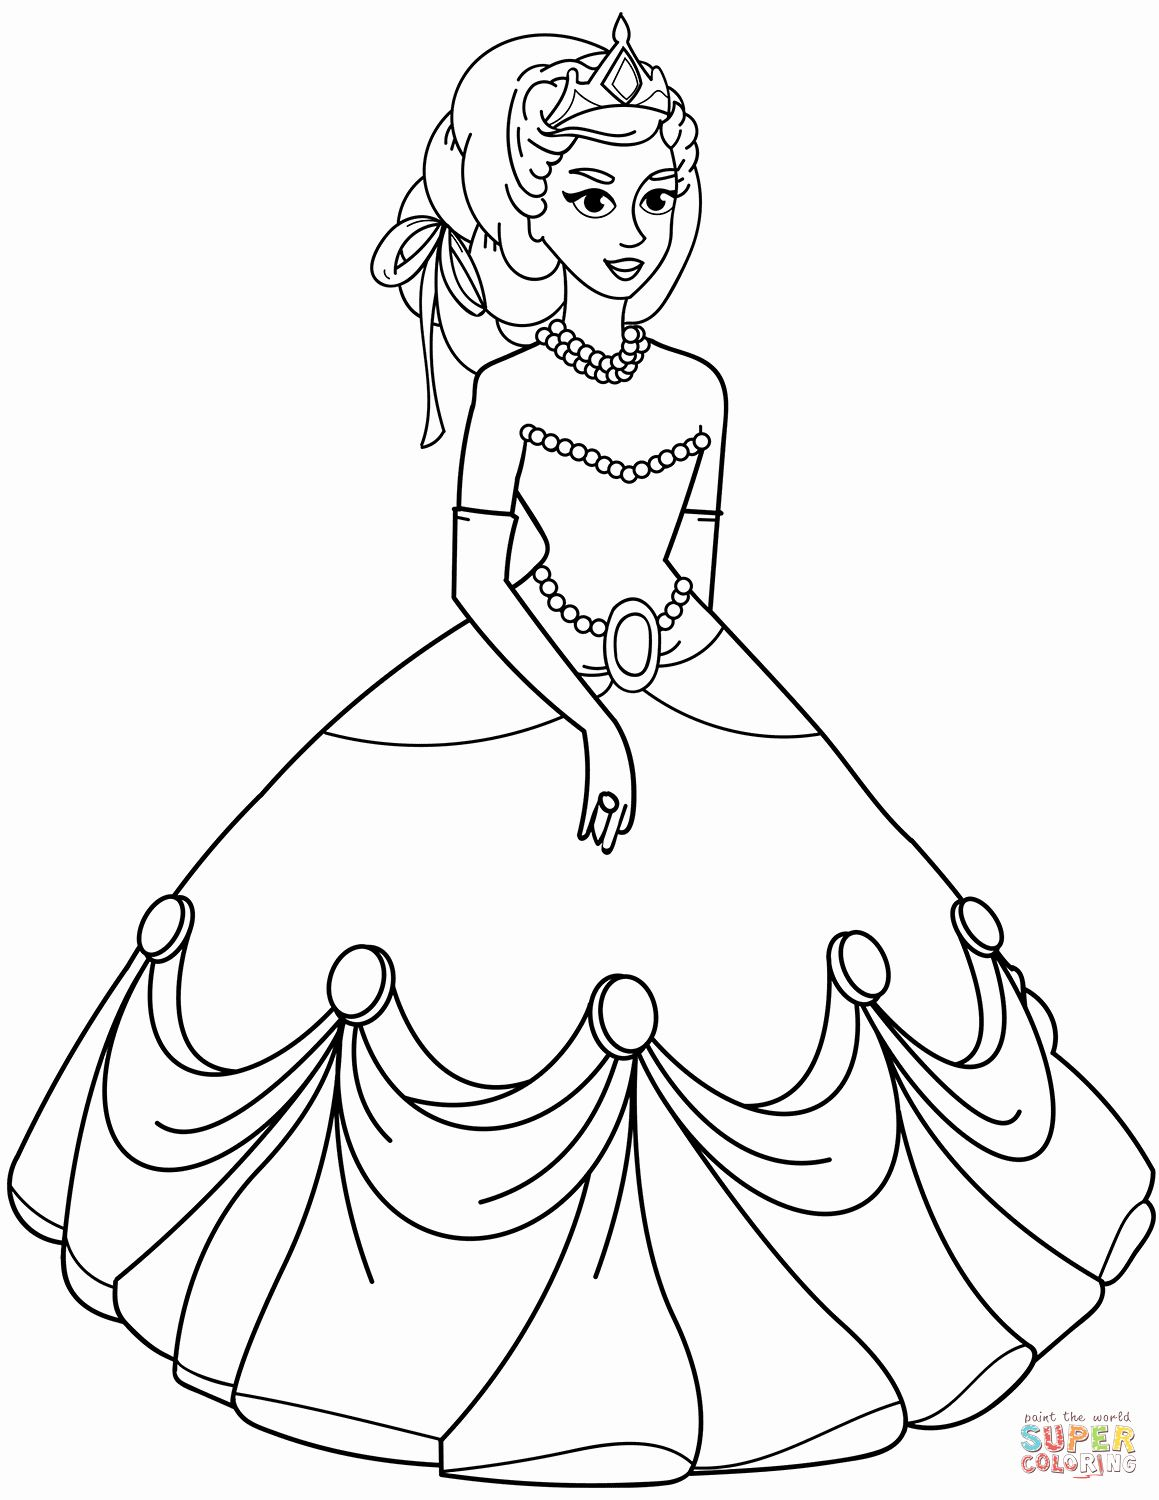 Coloring Pages For Kids Princess Fresh Princess In Ball Gown Dress Coloring Page Princess Coloring Pages Princess Coloring Sheets Princess Coloring